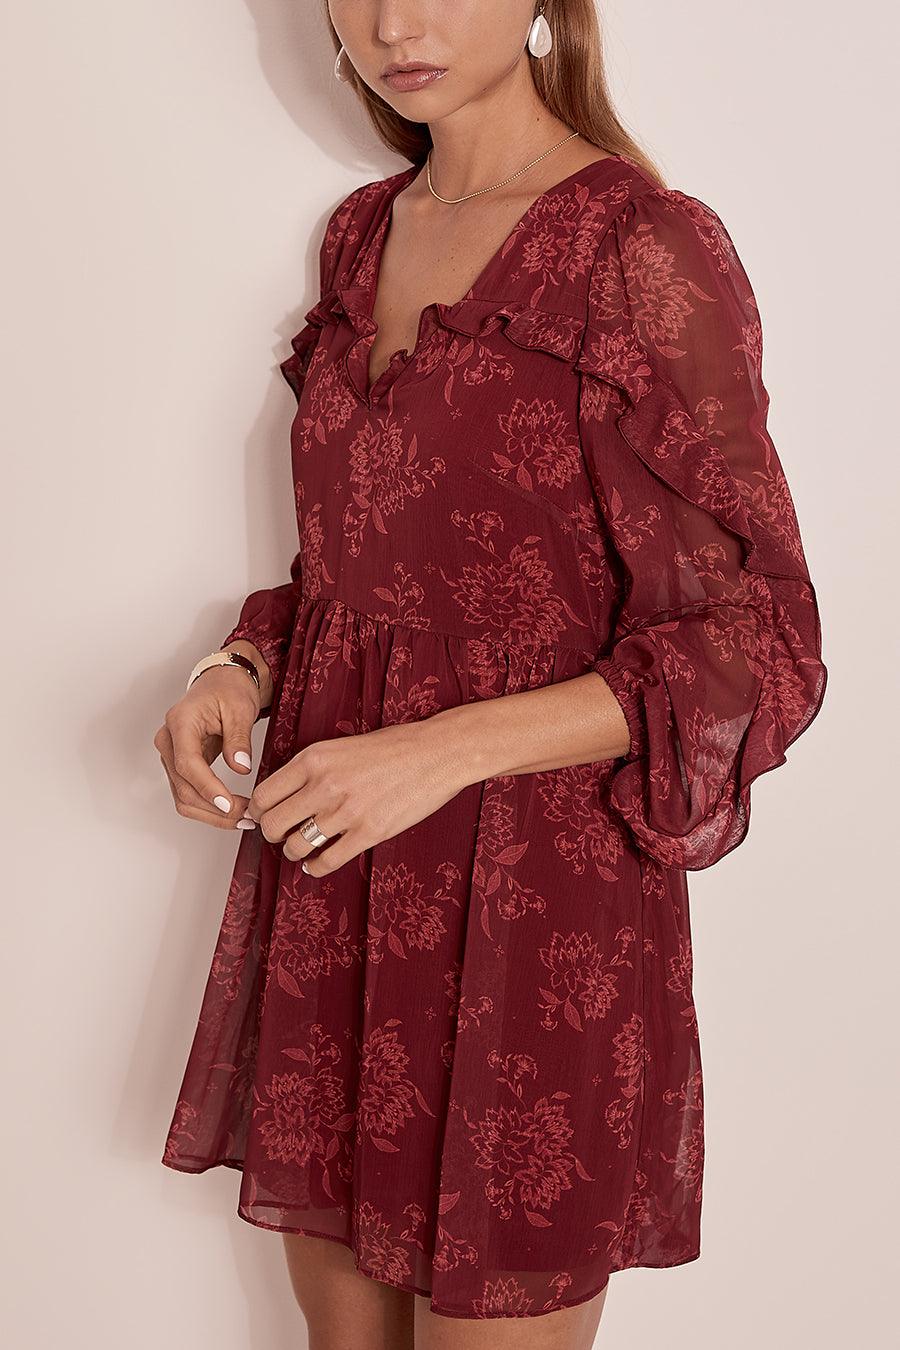 STEELE SAHARA MINI DRESS - PINOT